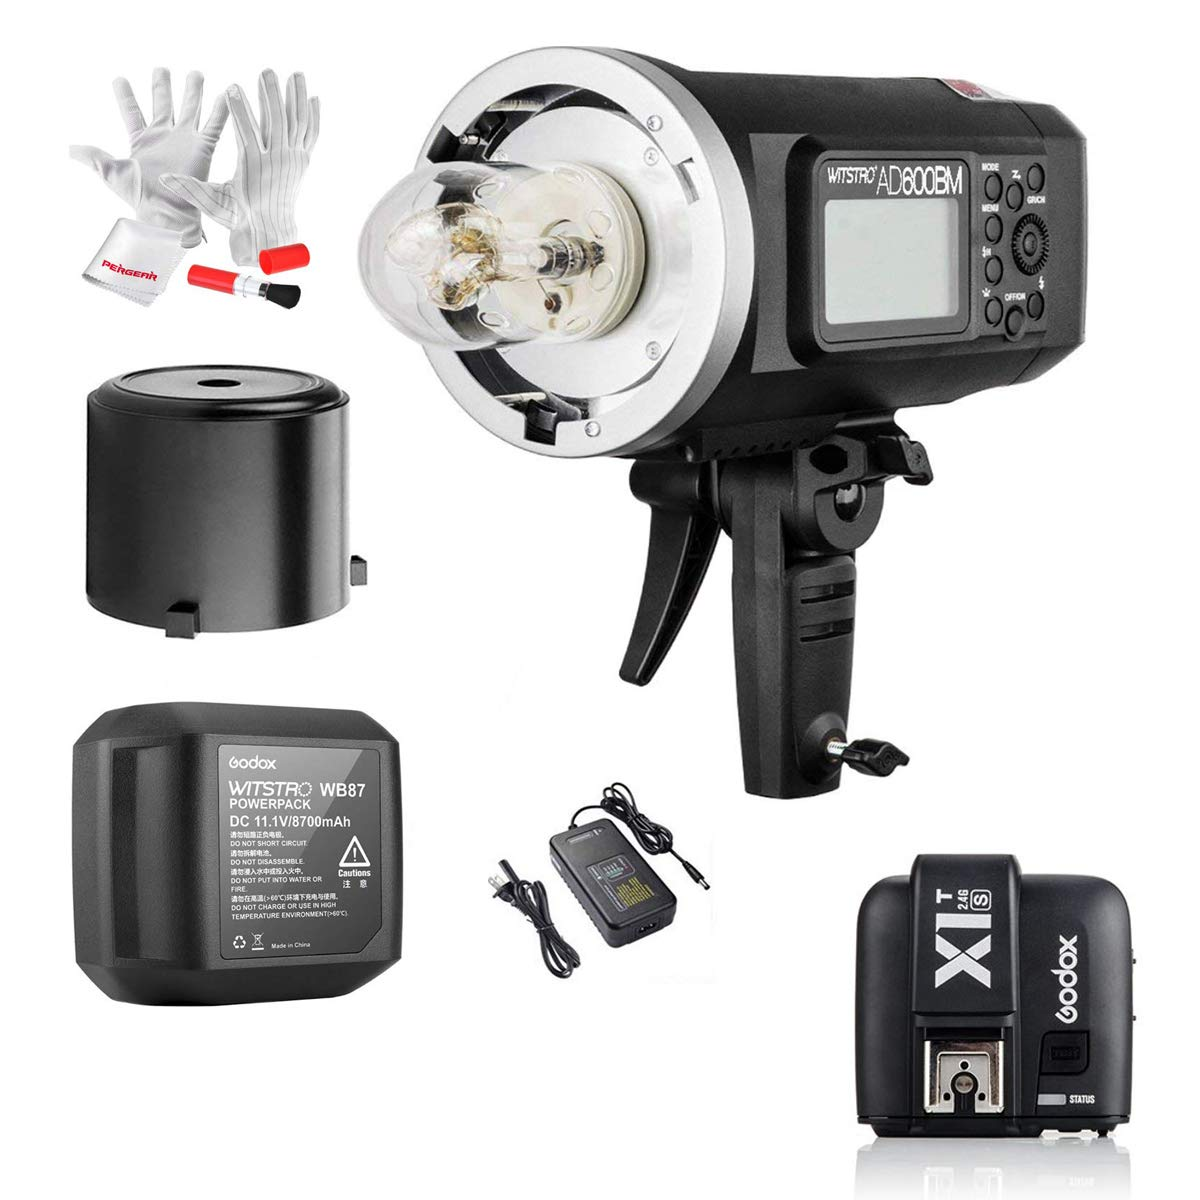 Godox AD600BM 600Ws GN87 1/8000 HSS Outdoor Flash Strobe Monolight with X1T-S TTL Wireless Flash Trigger and 8700mAh Battery with MI Shoe Like A77II A7RII A7R A58 A99 ILCE6000L by Godox